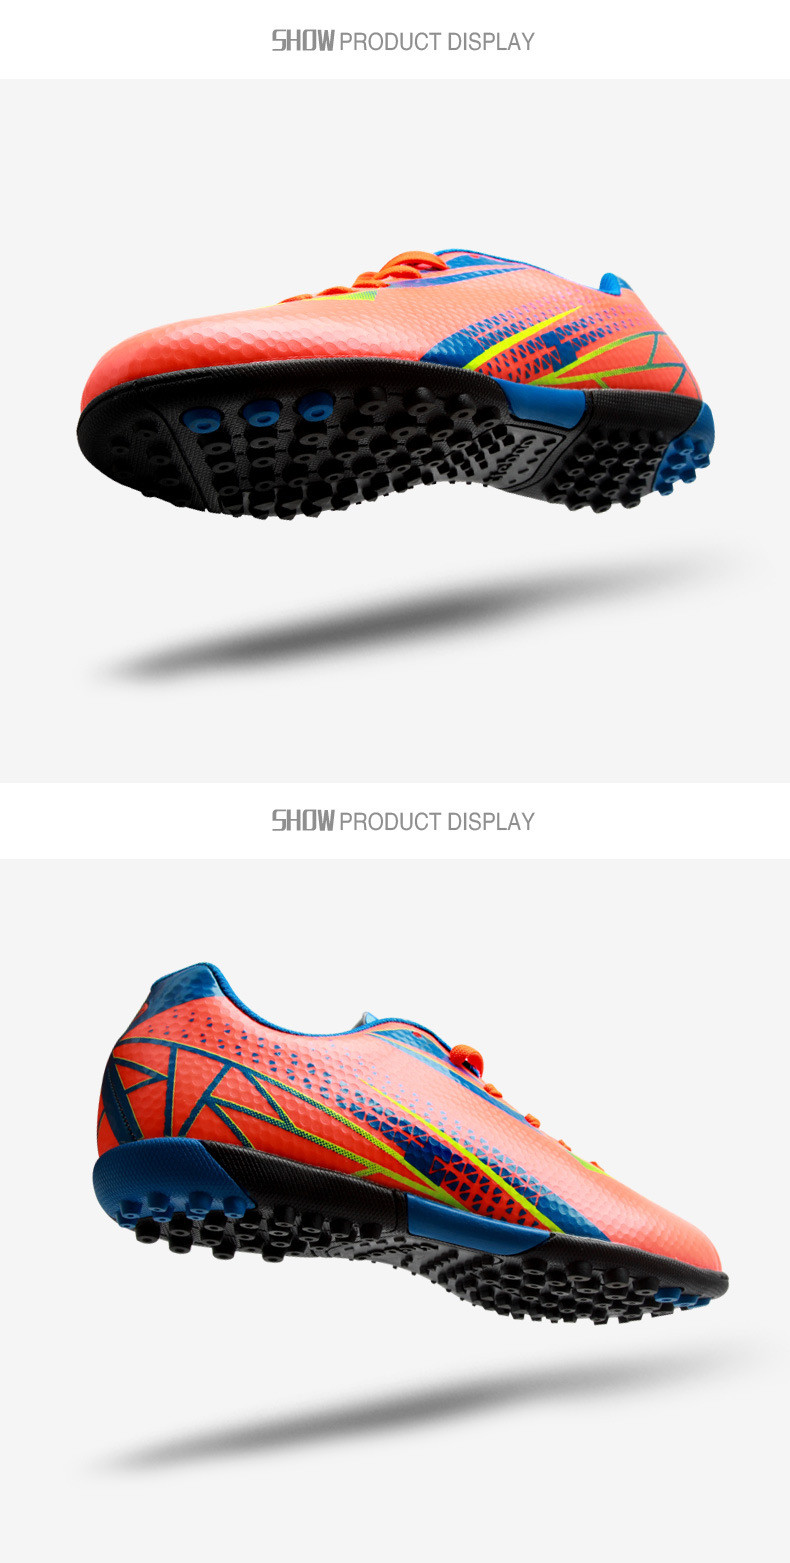 new soccer shoes boots futsal chaussures foot mens indoor football boots voetbalschoenen football cleats soccer shoes 3 colorsusd 35 99 pair  [ 790 x 1563 Pixel ]